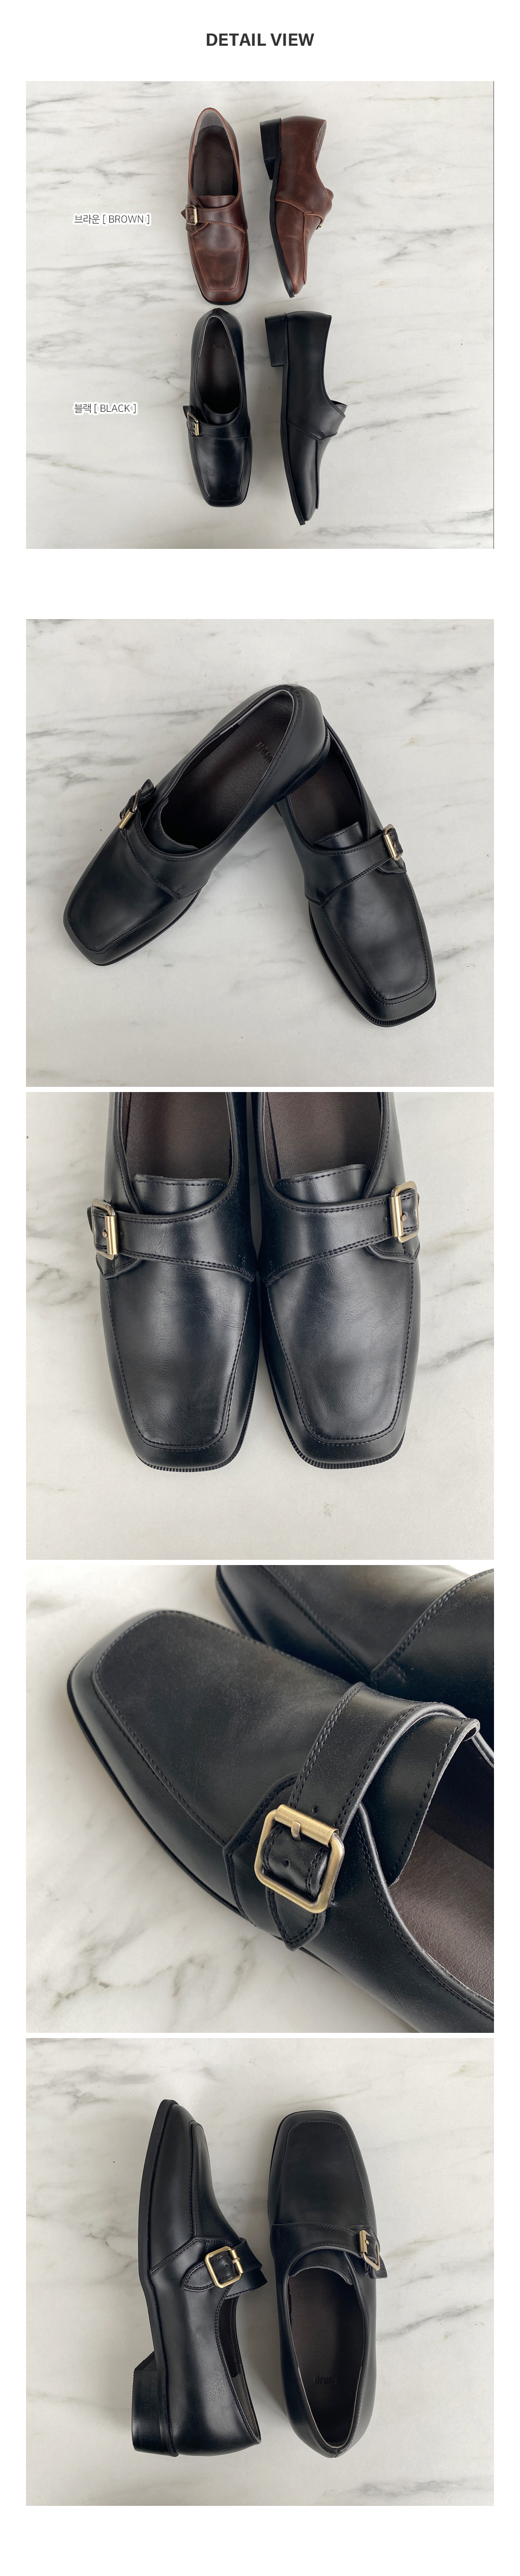 852 buckle loafers-2color